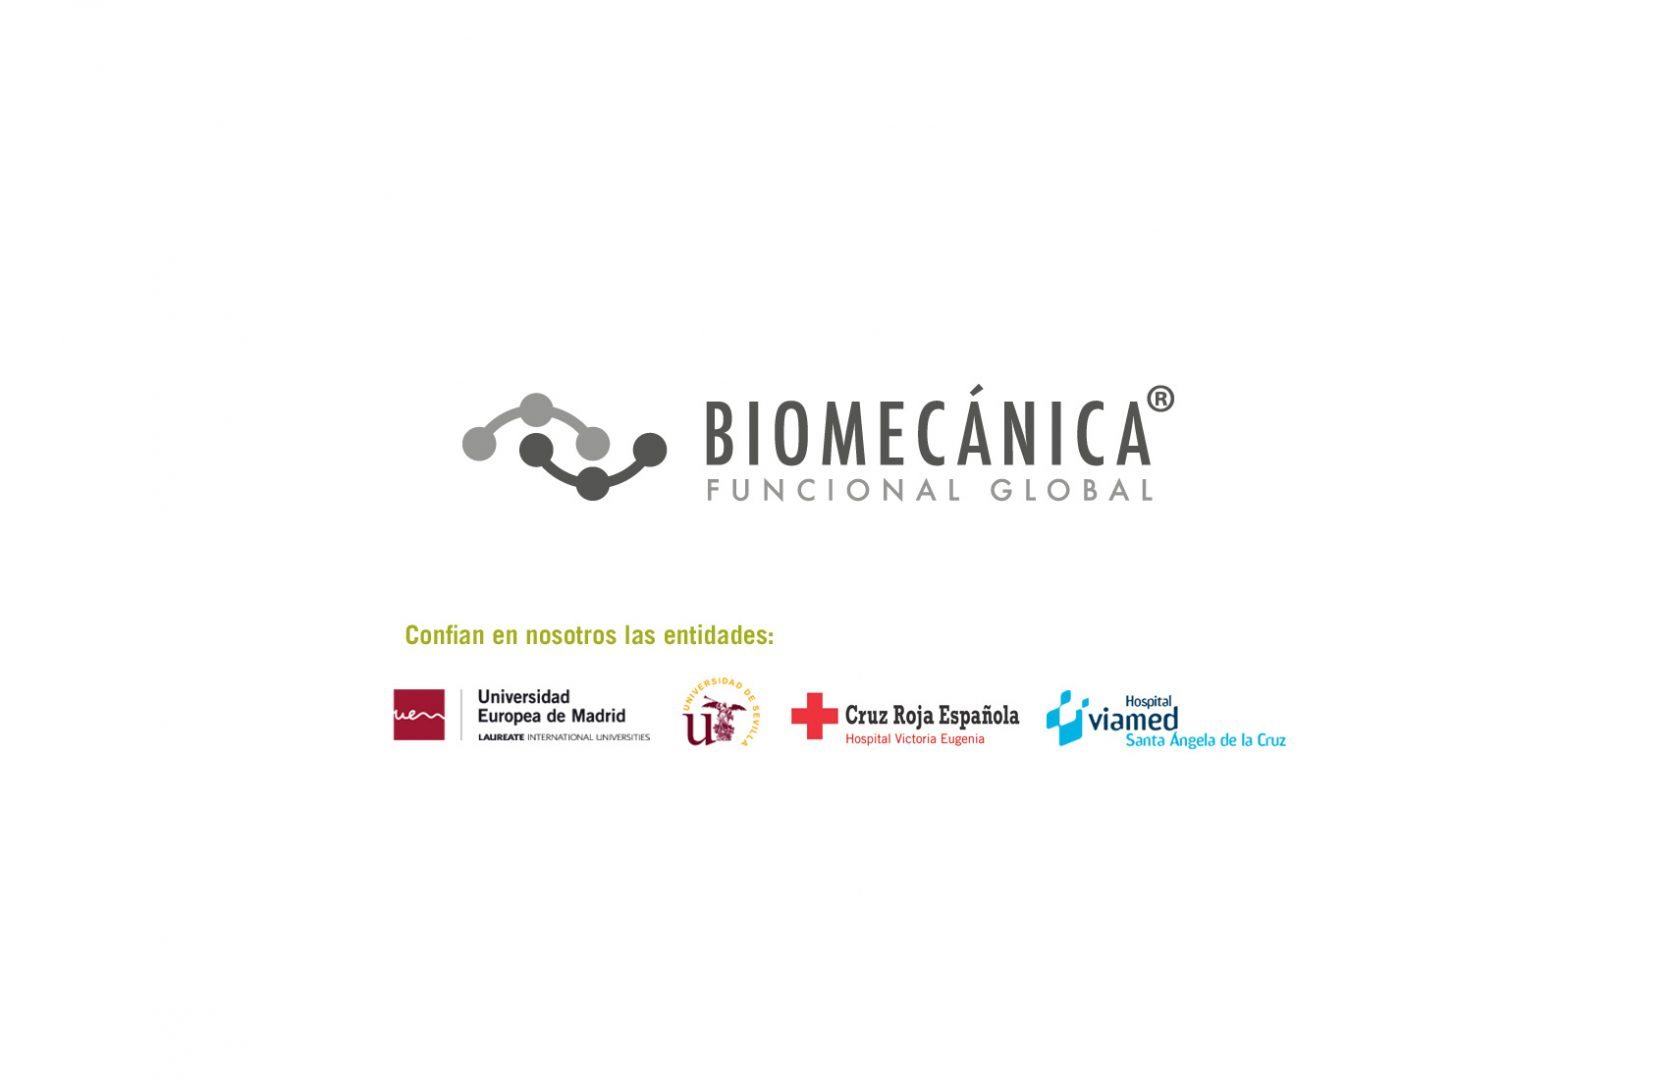 BIOMECÁNICA FUNCIONAL GLOBAL